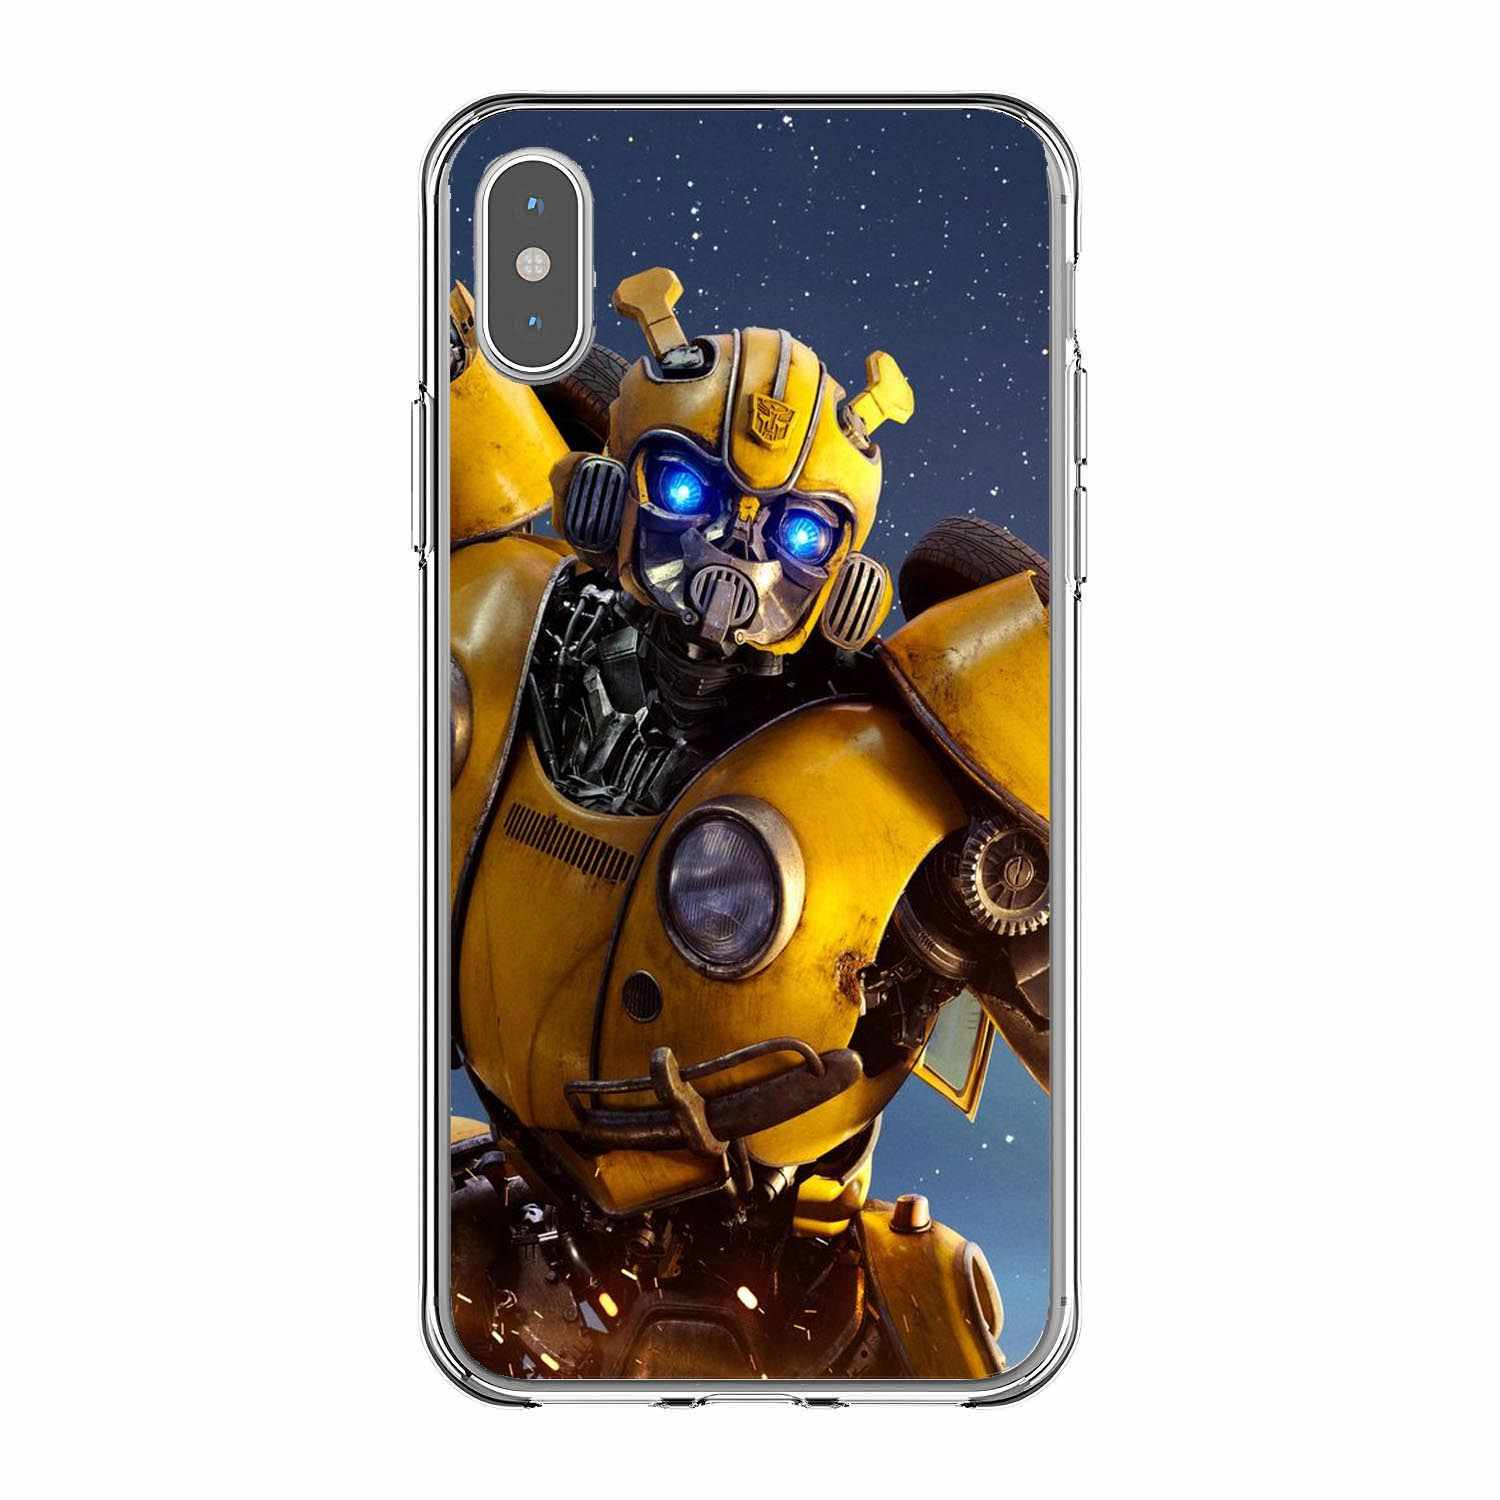 best service 08b23 3a86f Cuddly Transformers Bumblebee Phone Cases Cover For iPhone X10 MAX 5S SE 6  6SPlus 7 8Plus Soft silicon TPU Coque Shell Cover